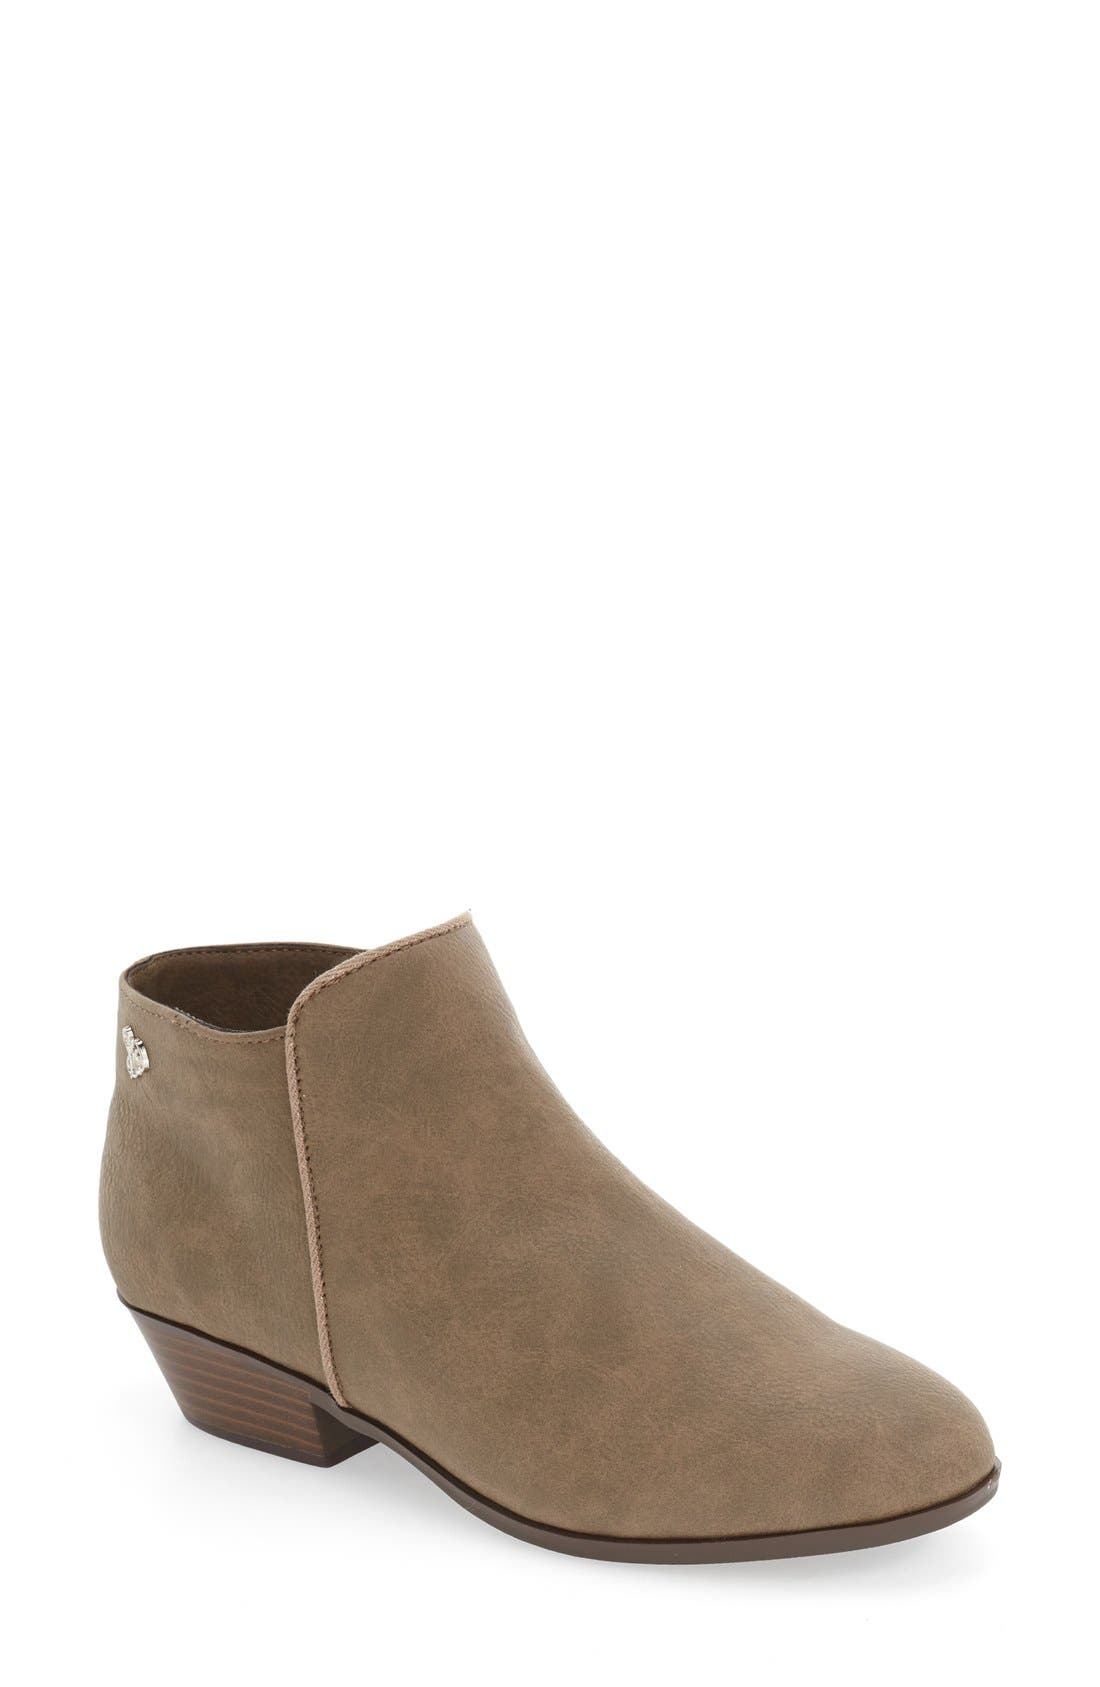 Main Image - Sam Edelman 'Petty' Bootie (Walker, Toddler, Little Kid & Big Kid)